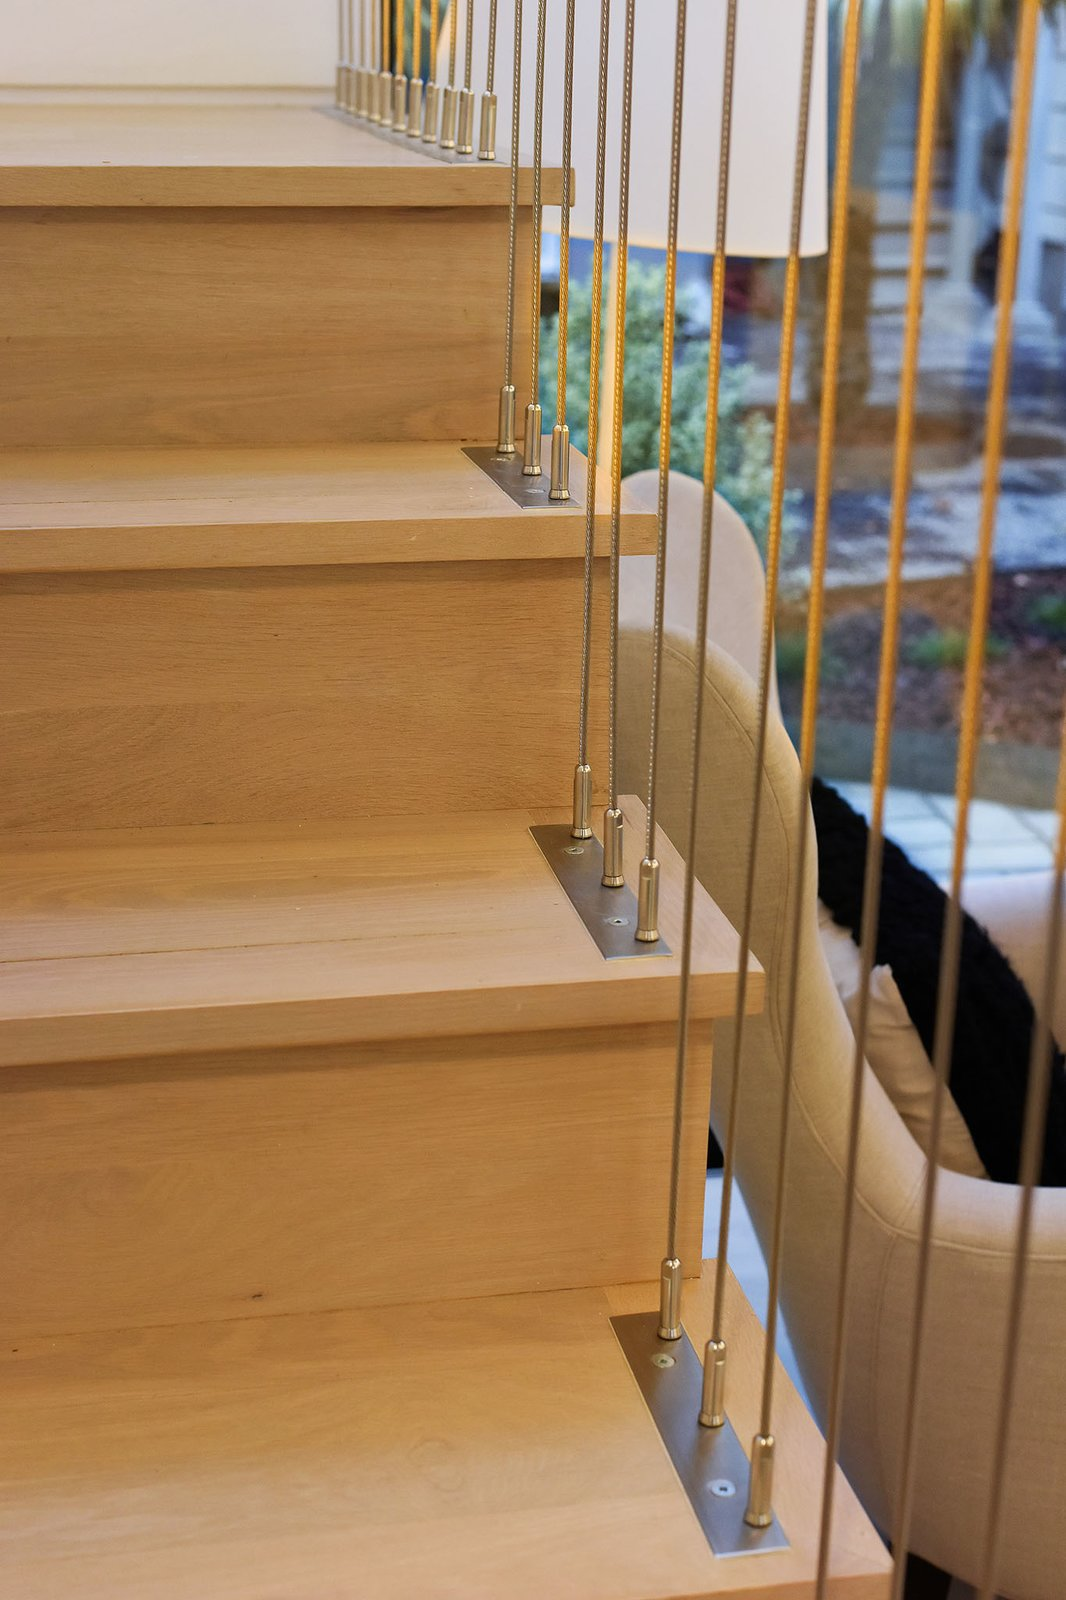 Staircase, Cable Railing, and Wood Tread  For Sale: 188 Quane Street